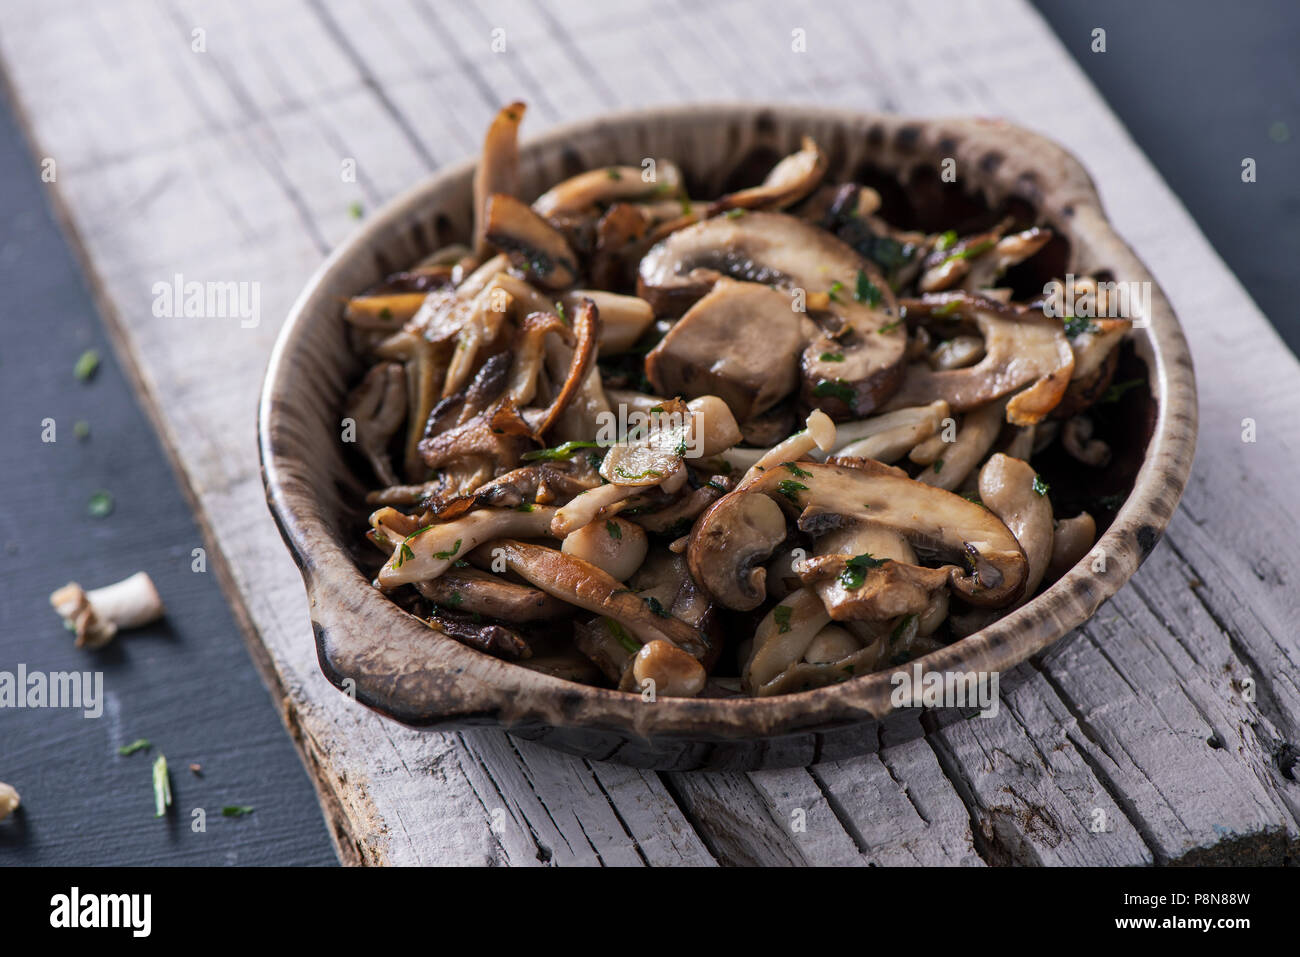 closeup of a brown earthenware bowl with some cooked mixed mushrooms, such as common mushrooms, oyster mushrooms or shiitake, on a white rustic wooden - Stock Image